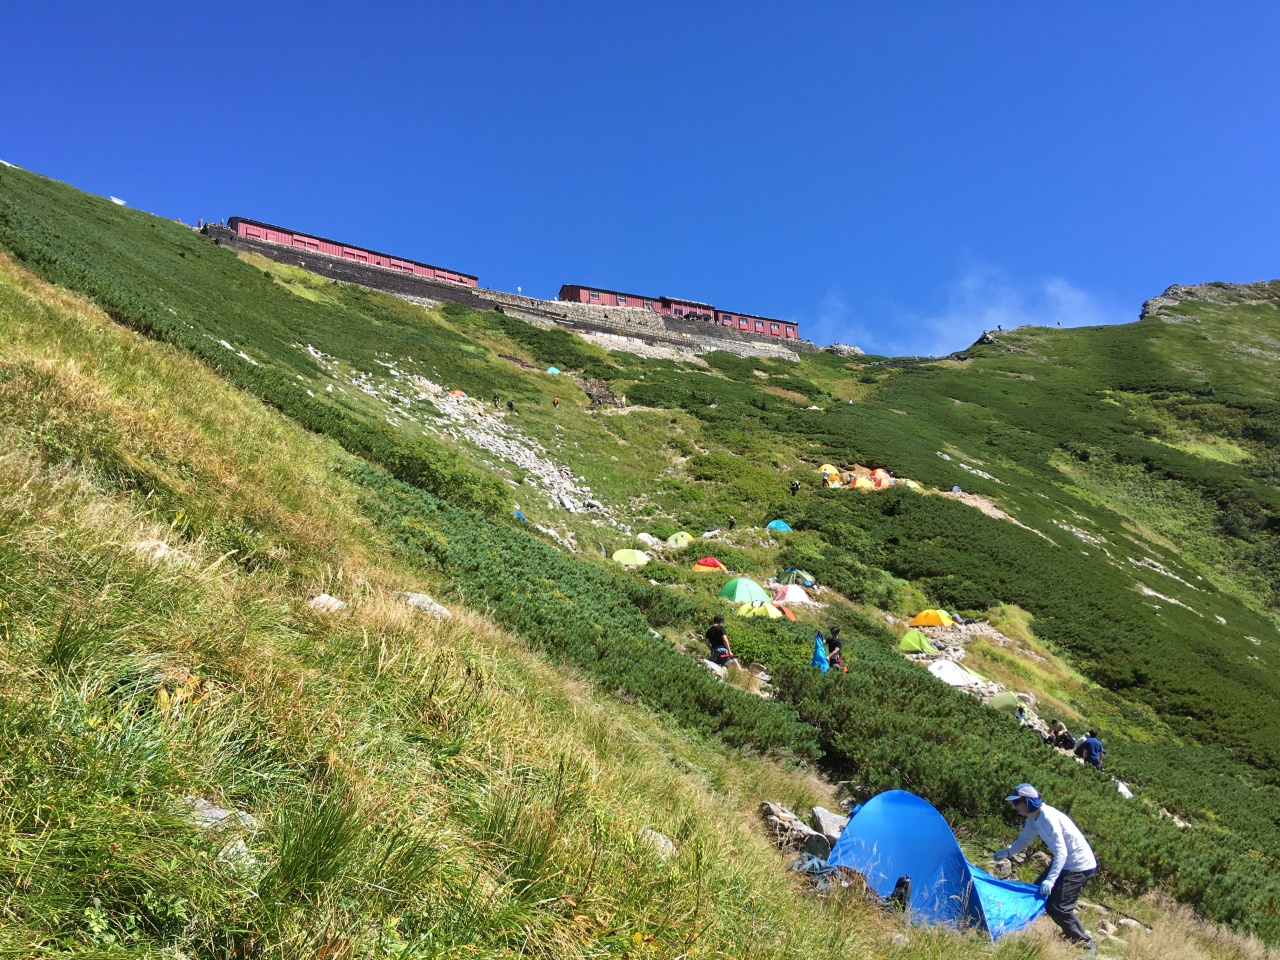 Hiking Karamatsu-Dake — An Adventure into the Northern Alps